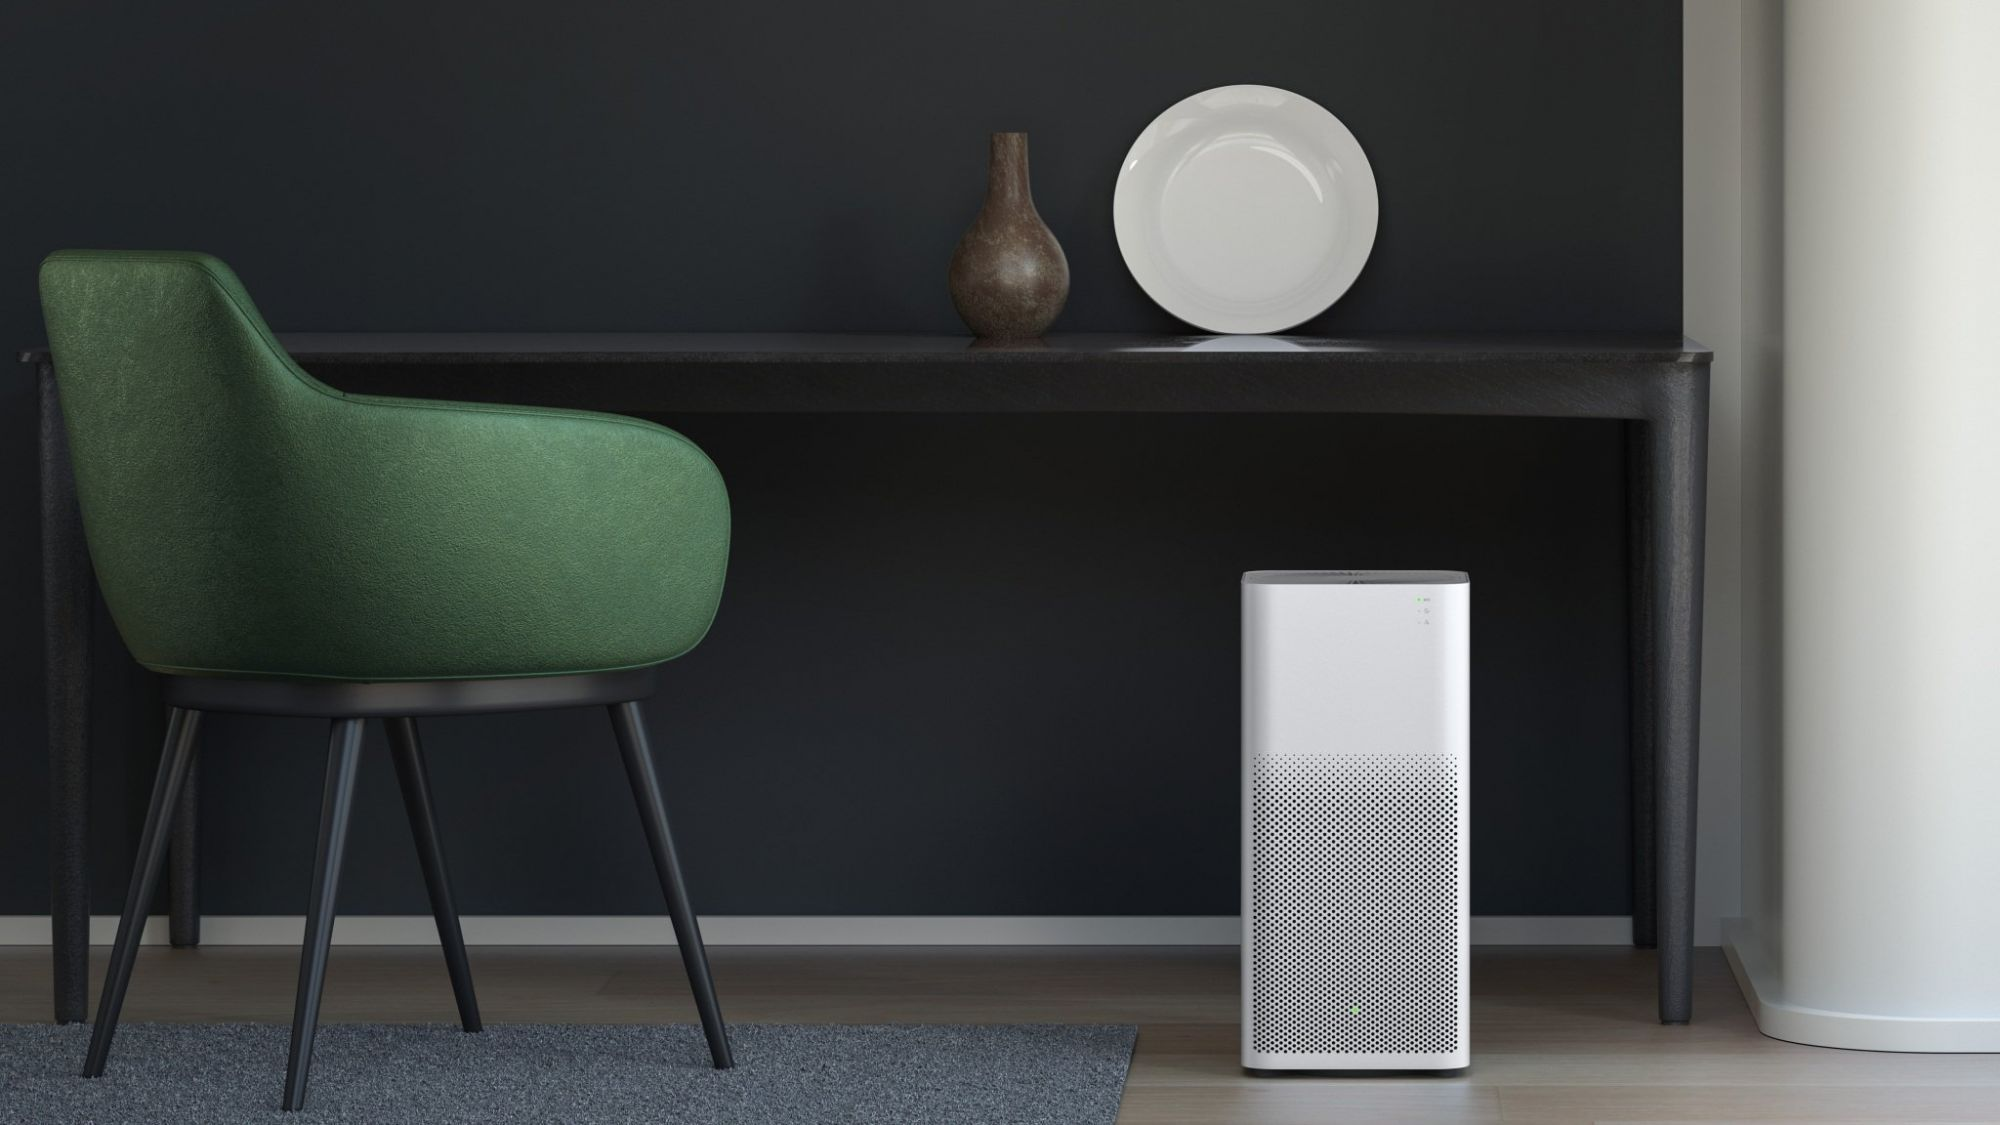 The Best HEPA Air Purifiers to Keep Your Home Bacteria-free